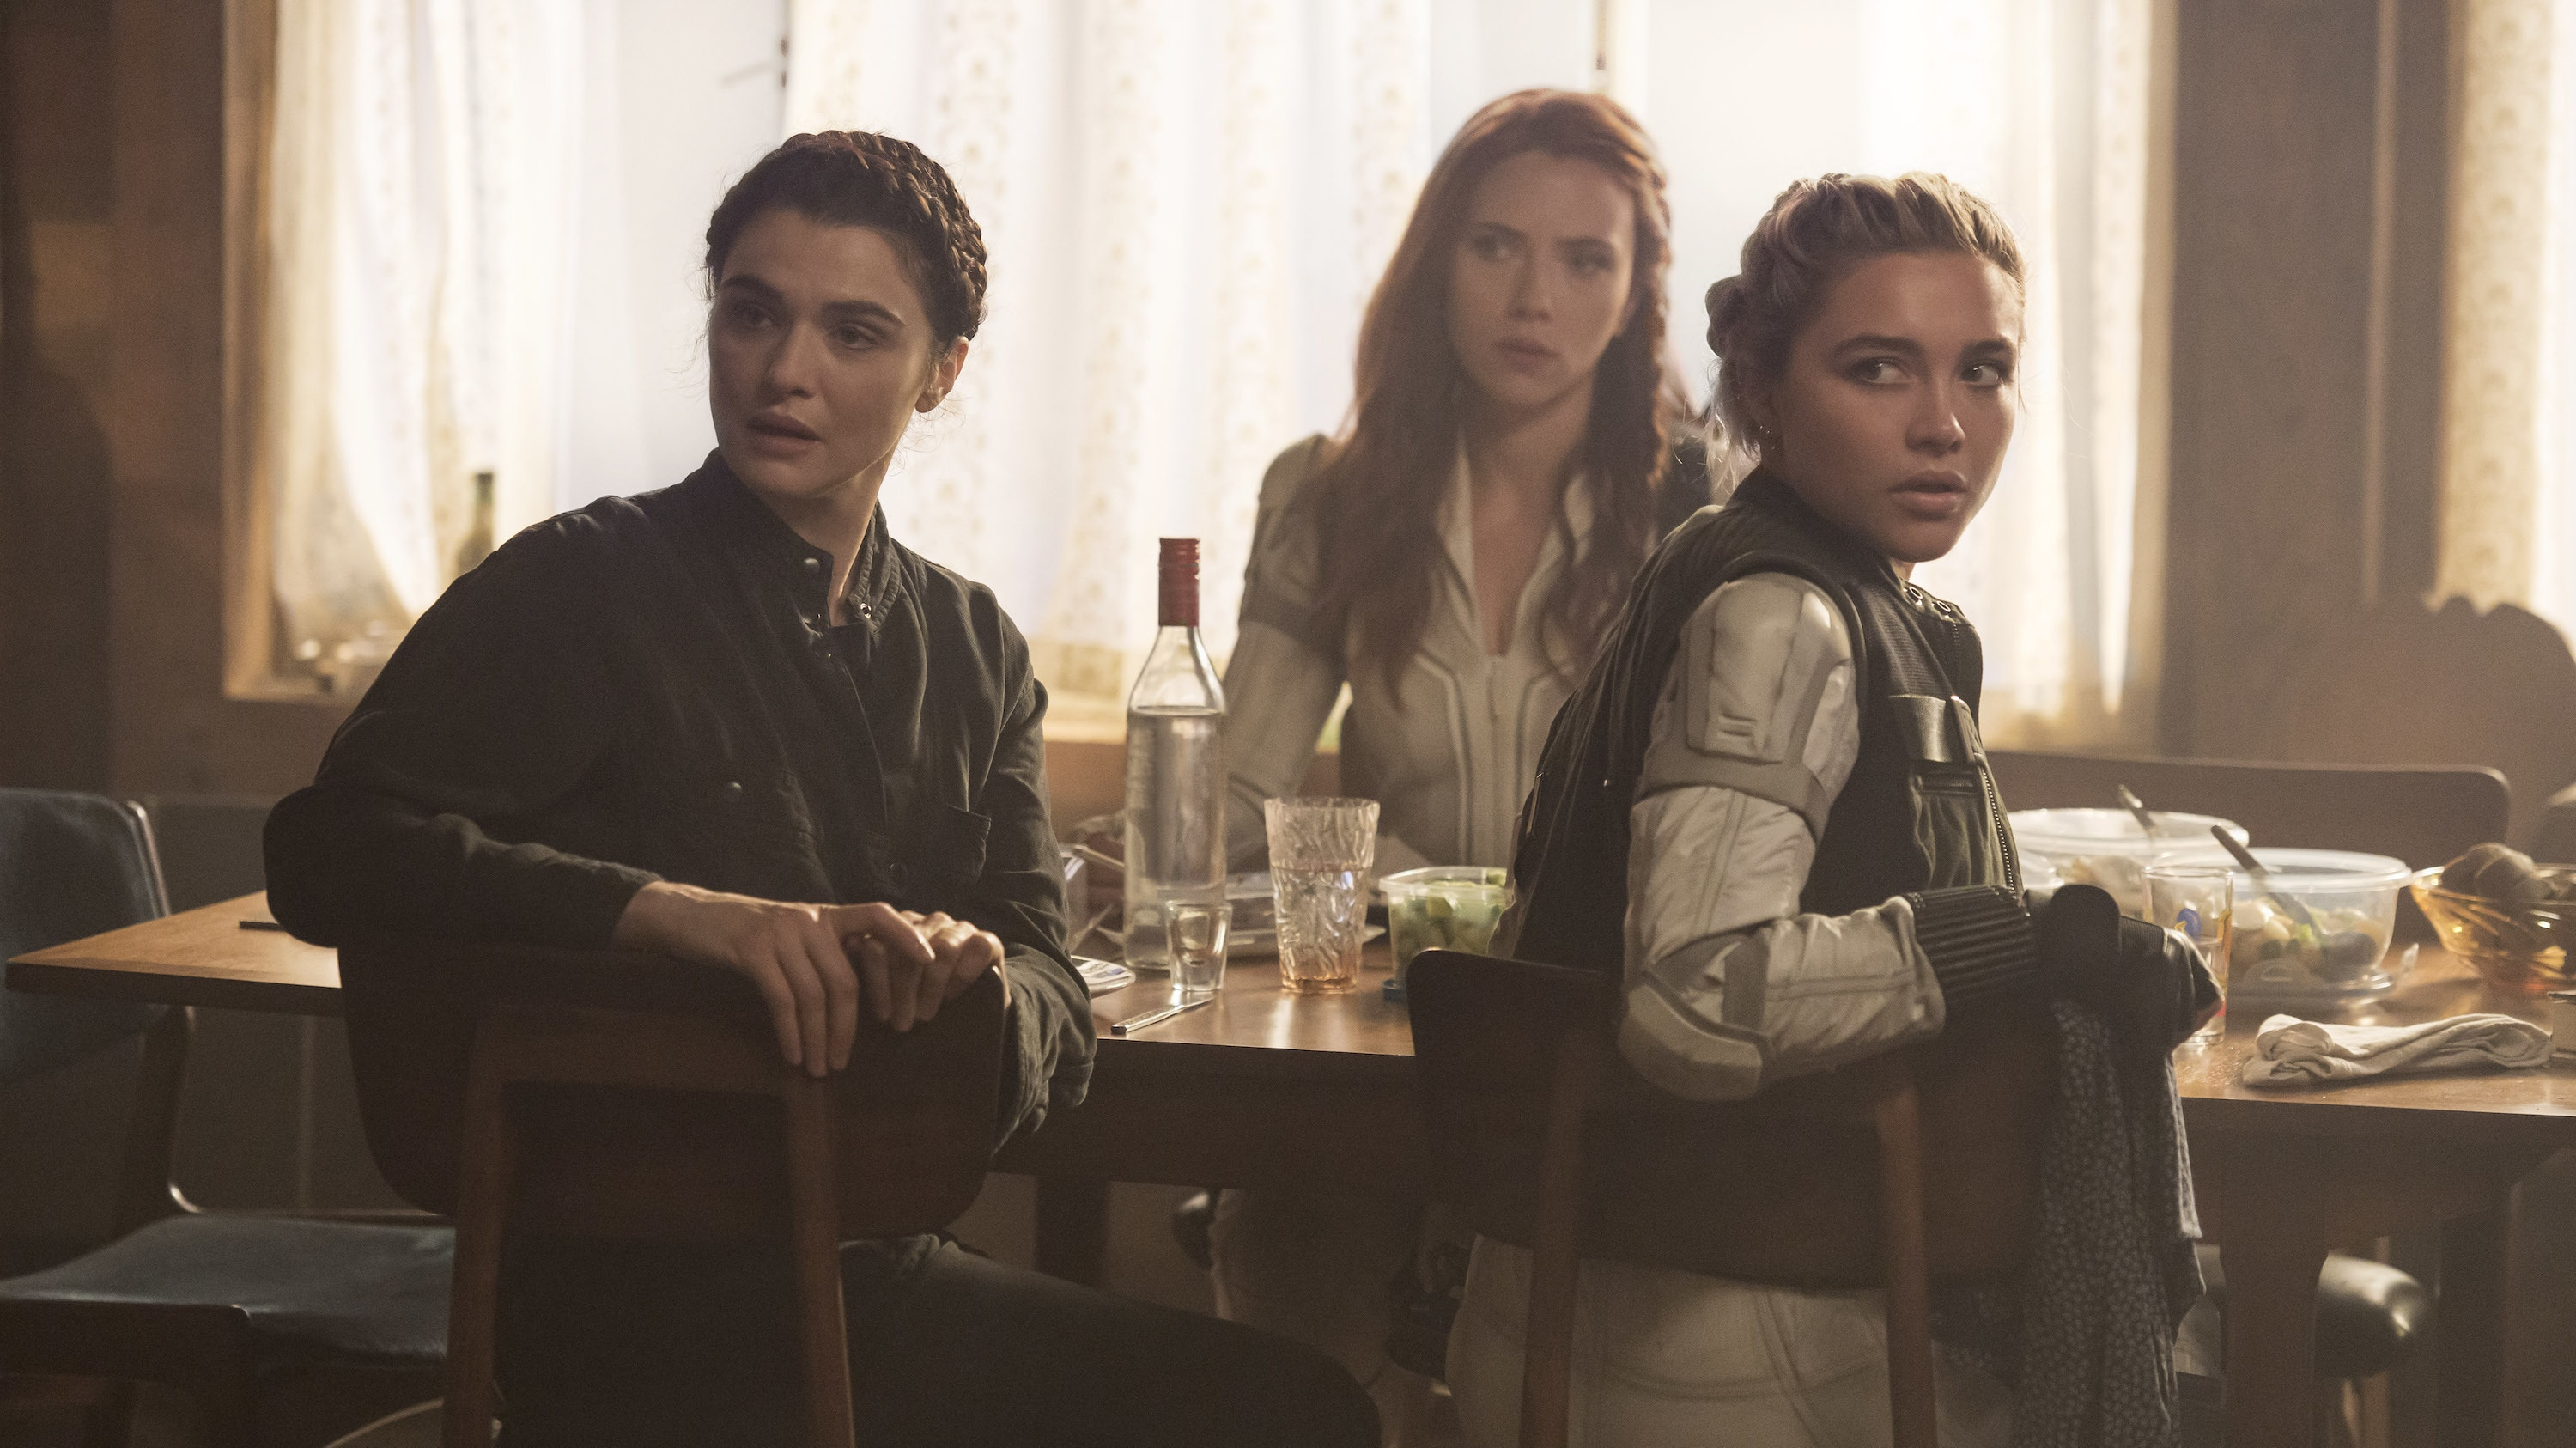 (L-R): Melina (Rachel Weisz), Black Widow/Natasha Romanoff (Scarlett Johansson) and Yelena (Florence Pugh) in Marvel Studios' BLACK WIDOW, in theaters and on Disney+ with Premier Access. Photo by Jay Maidment. ©Marvel Studios 2021. All Rights Reserved.